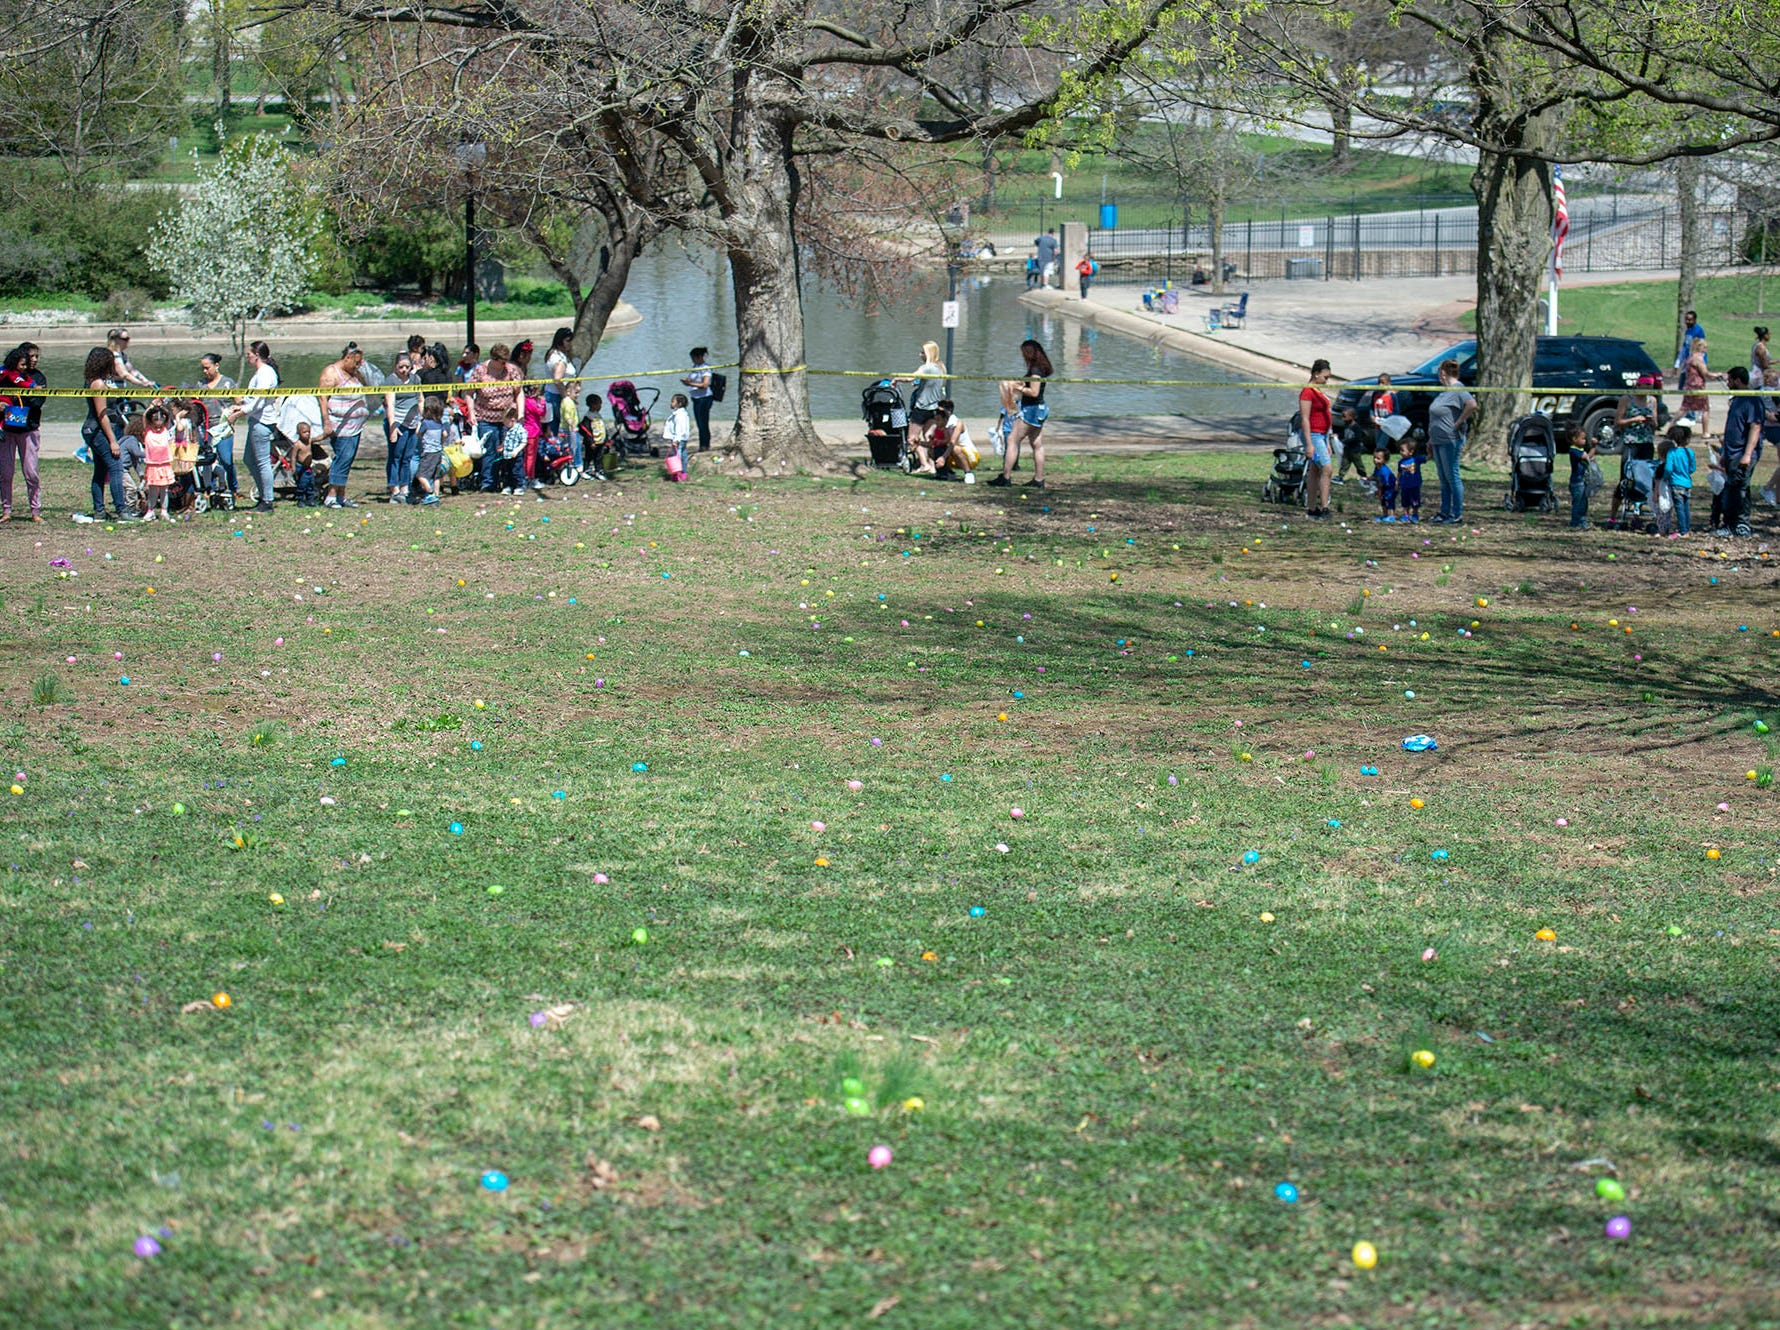 Adults and children await the start of the 1-3-year-old division at the City of York's Easter Egg Hunt at Kiwanis Lake on Saturday, April 13, 2019.